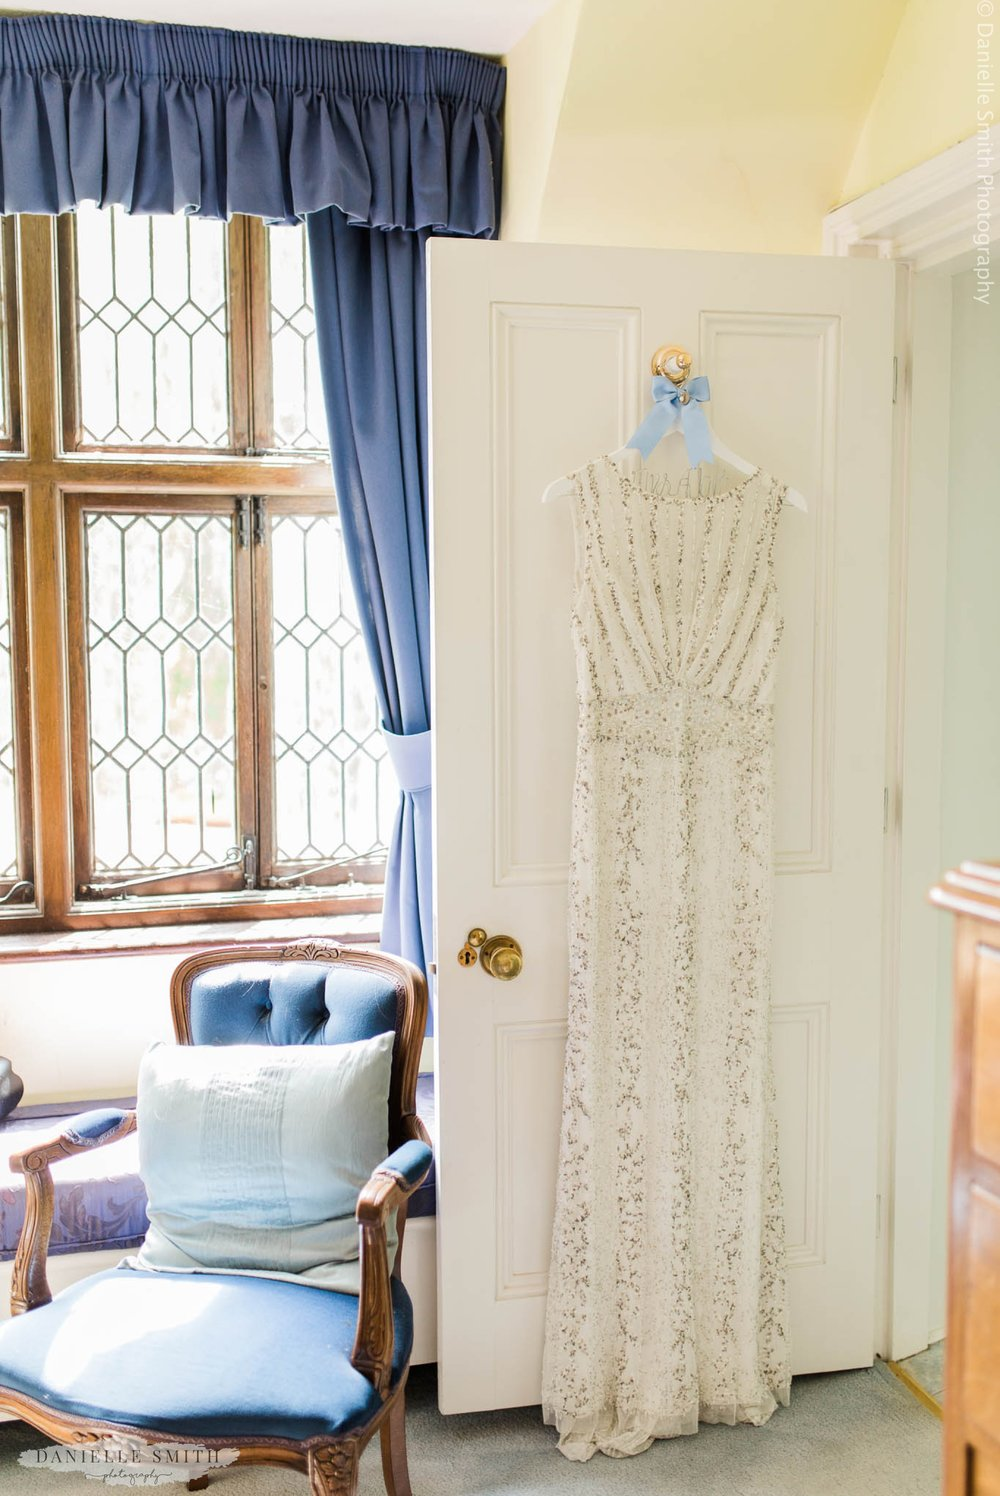 gatsby style beaded wedding dress hanging on door